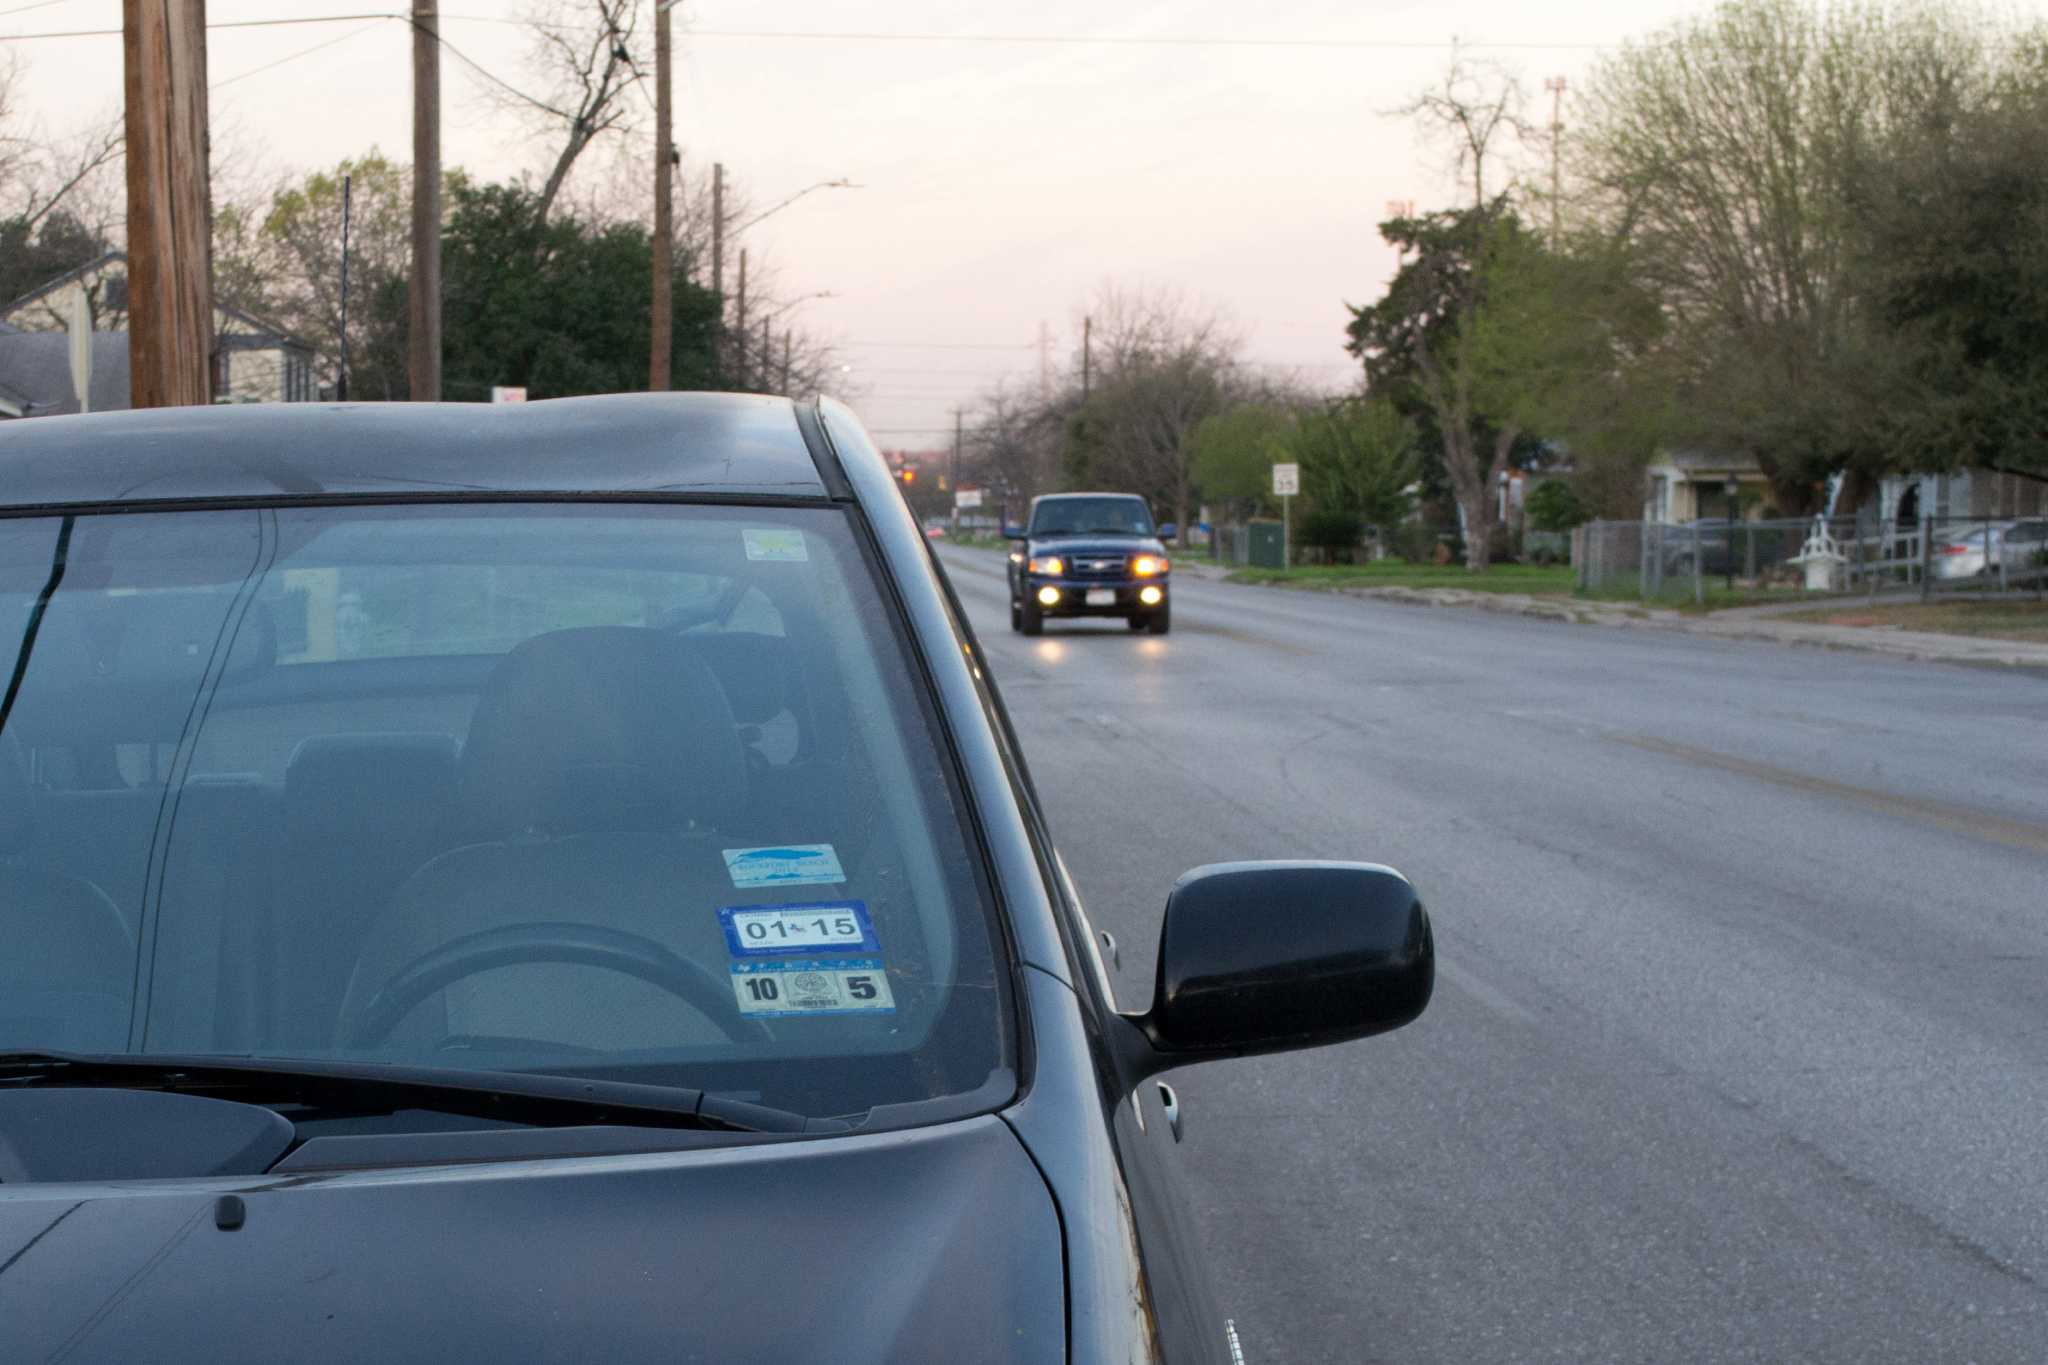 Local traffic fines to know and changes in texas registration inspection stickers